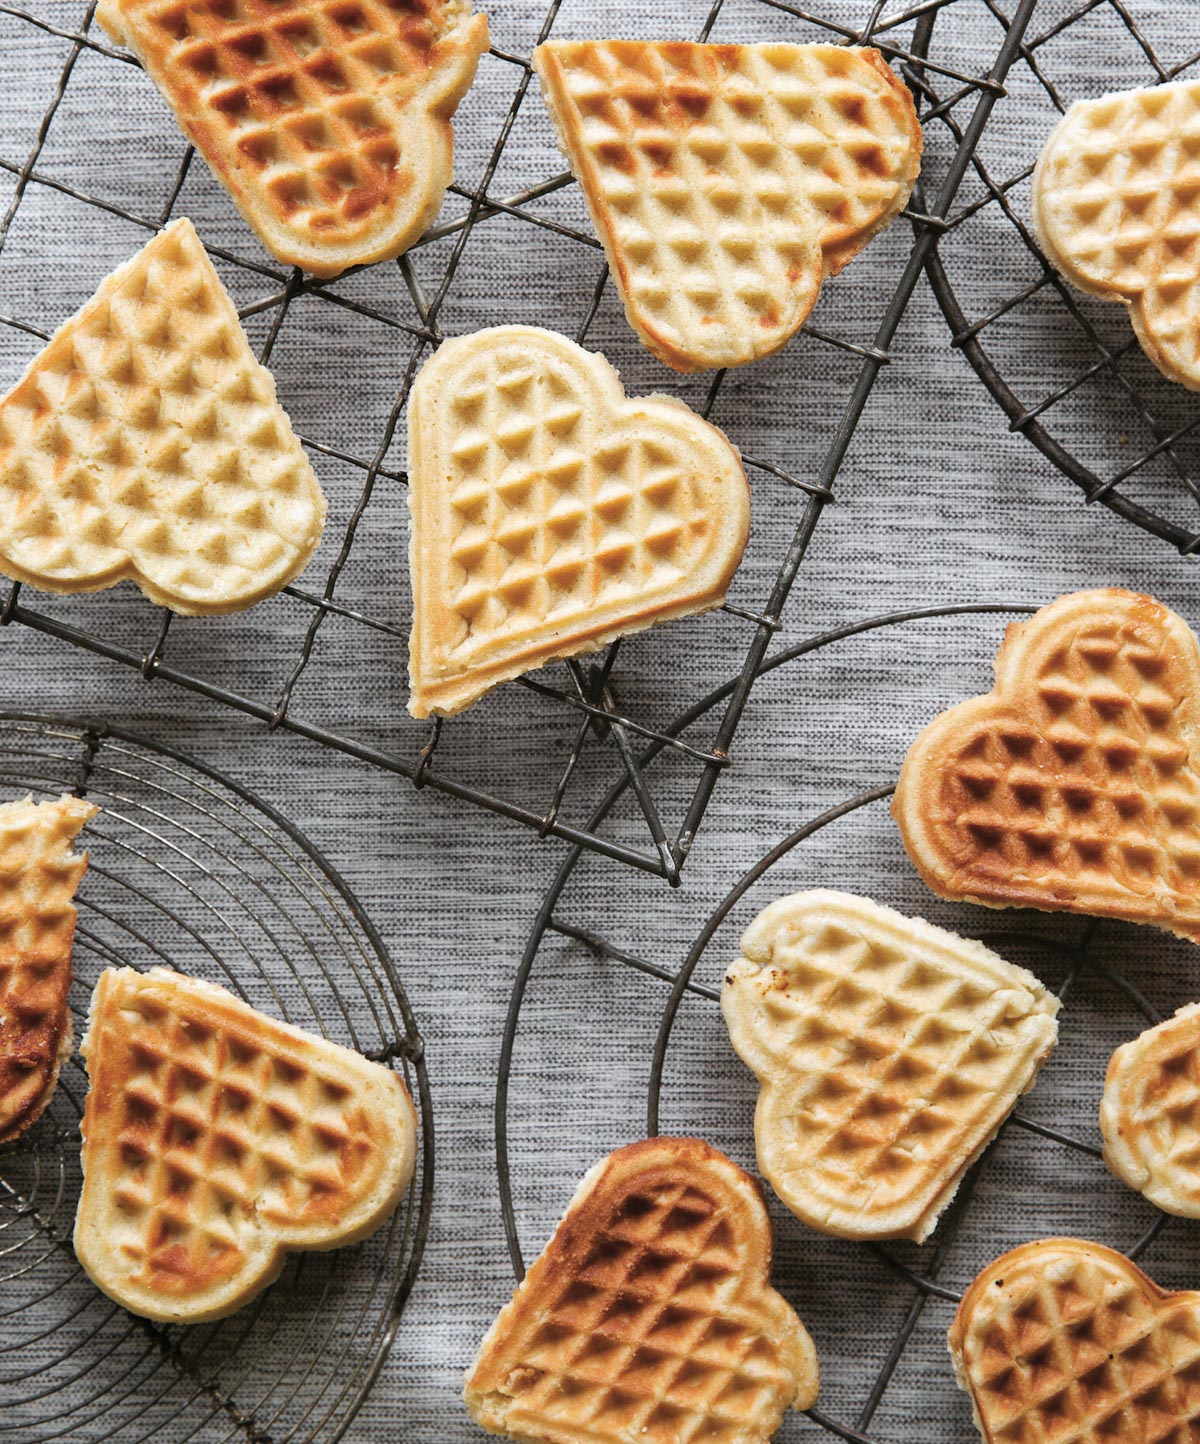 The recipe for these delicious waffle cookies is in Scandinavian Gatherings, which hits bookstore shelves September 27th. Preorder your copy now!